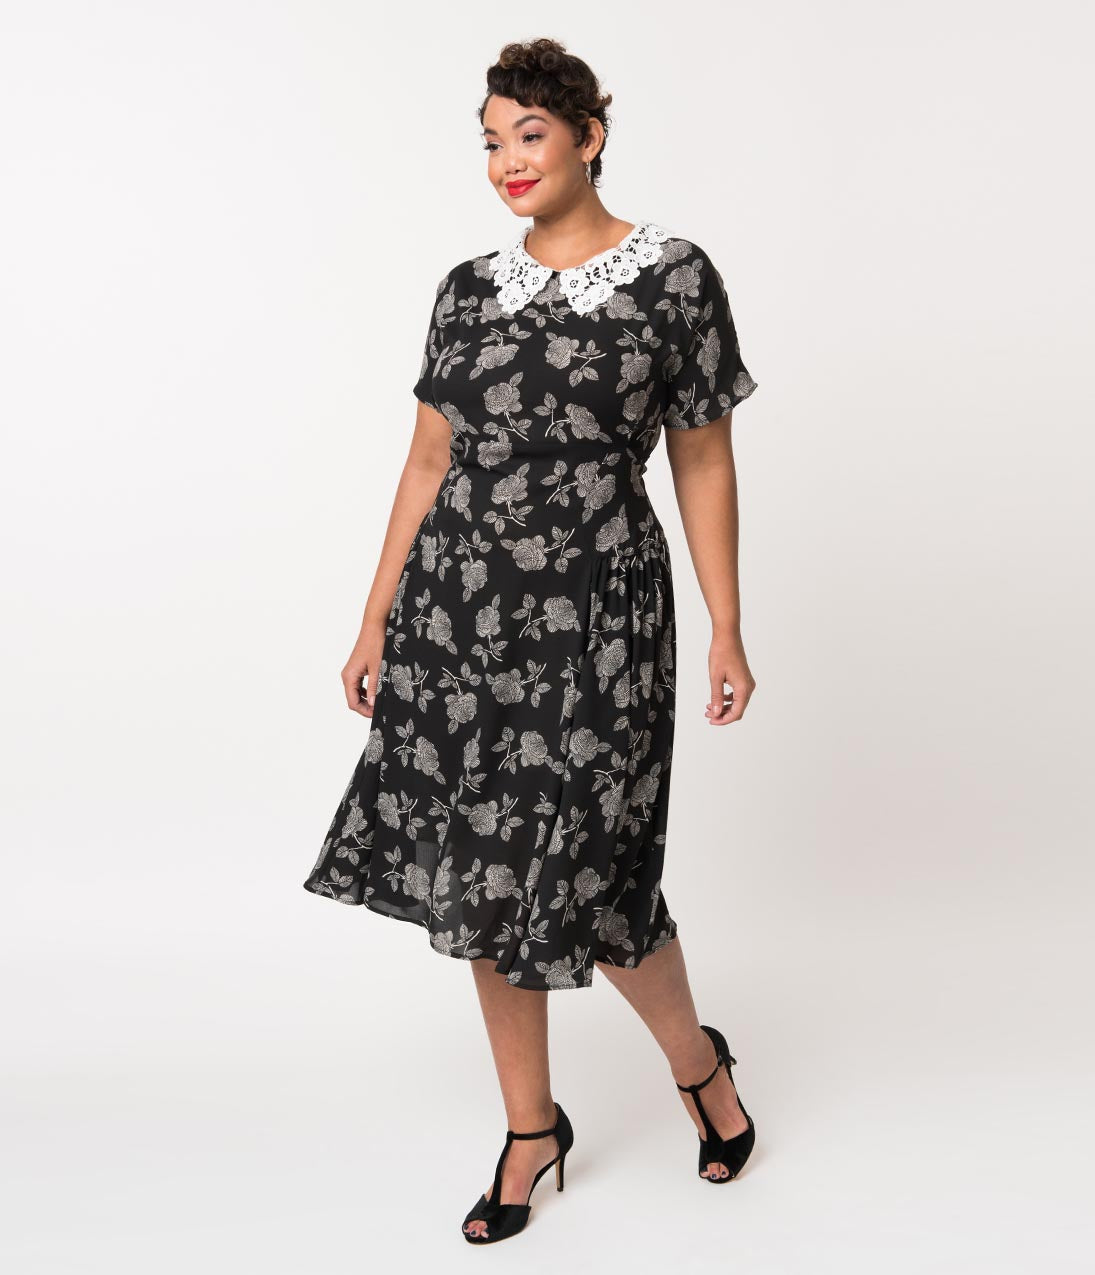 Swing Dance Clothing You Can Dance In Unique Vintage Plus Size 1940S Black  White Floral Lace Collar Margie Dress $66.00 AT vintagedancer.com